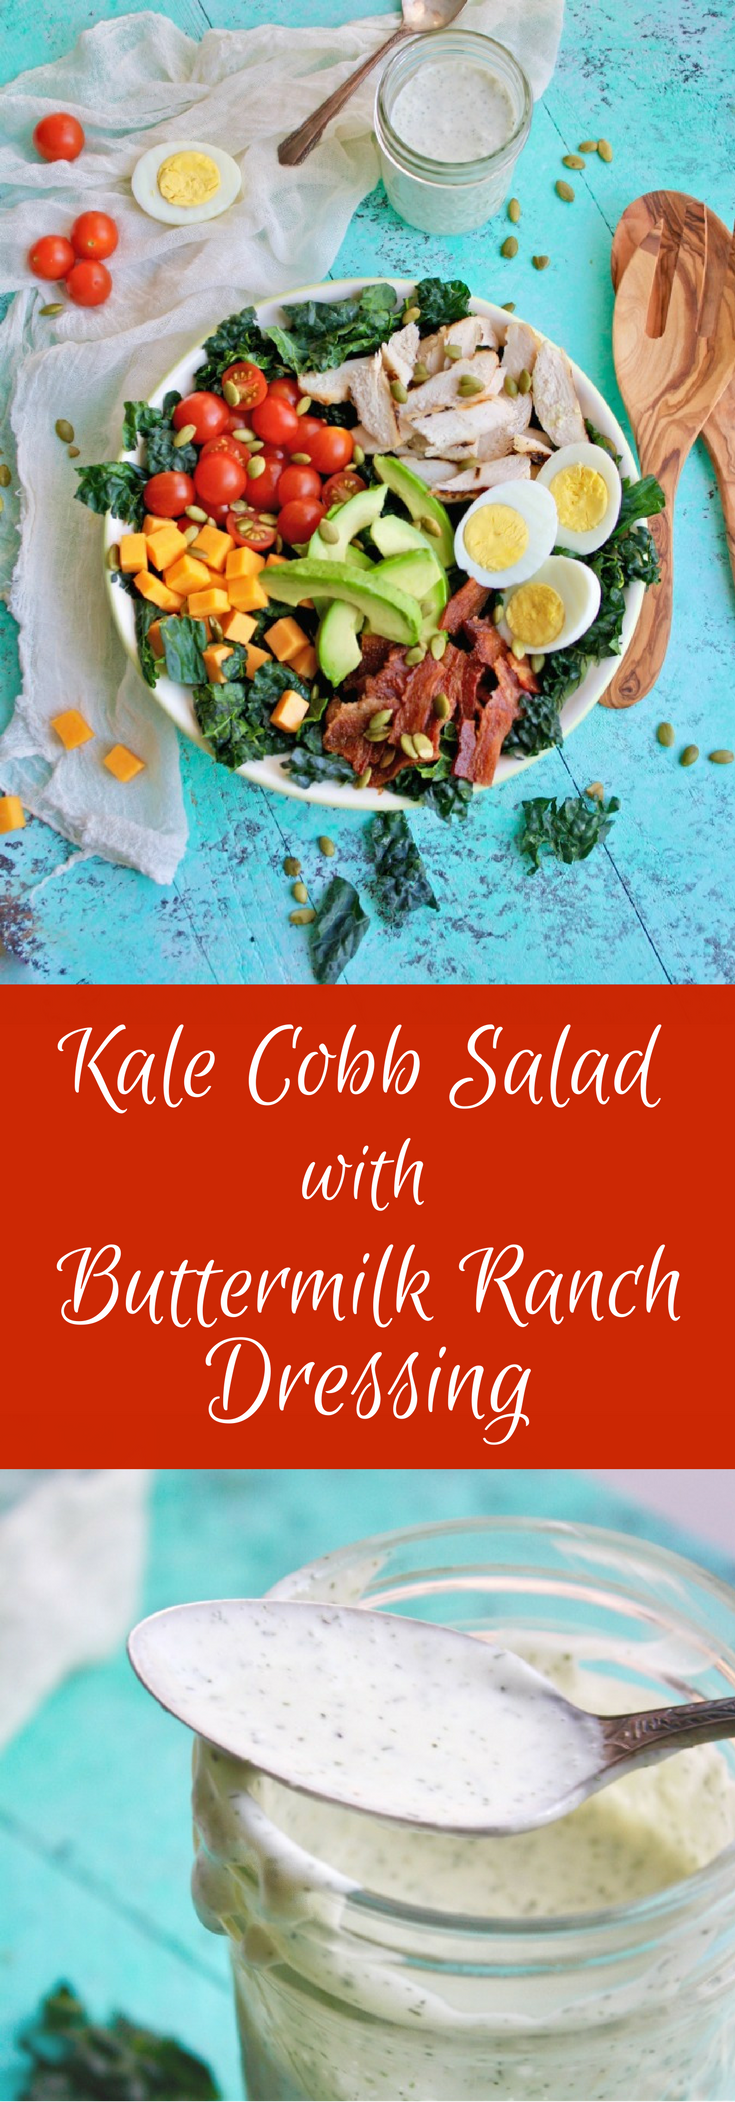 Sometimes a hearty salad is just what you need! Kale Cobb Salad with Buttermilk Ranch Dressing fills the bill!